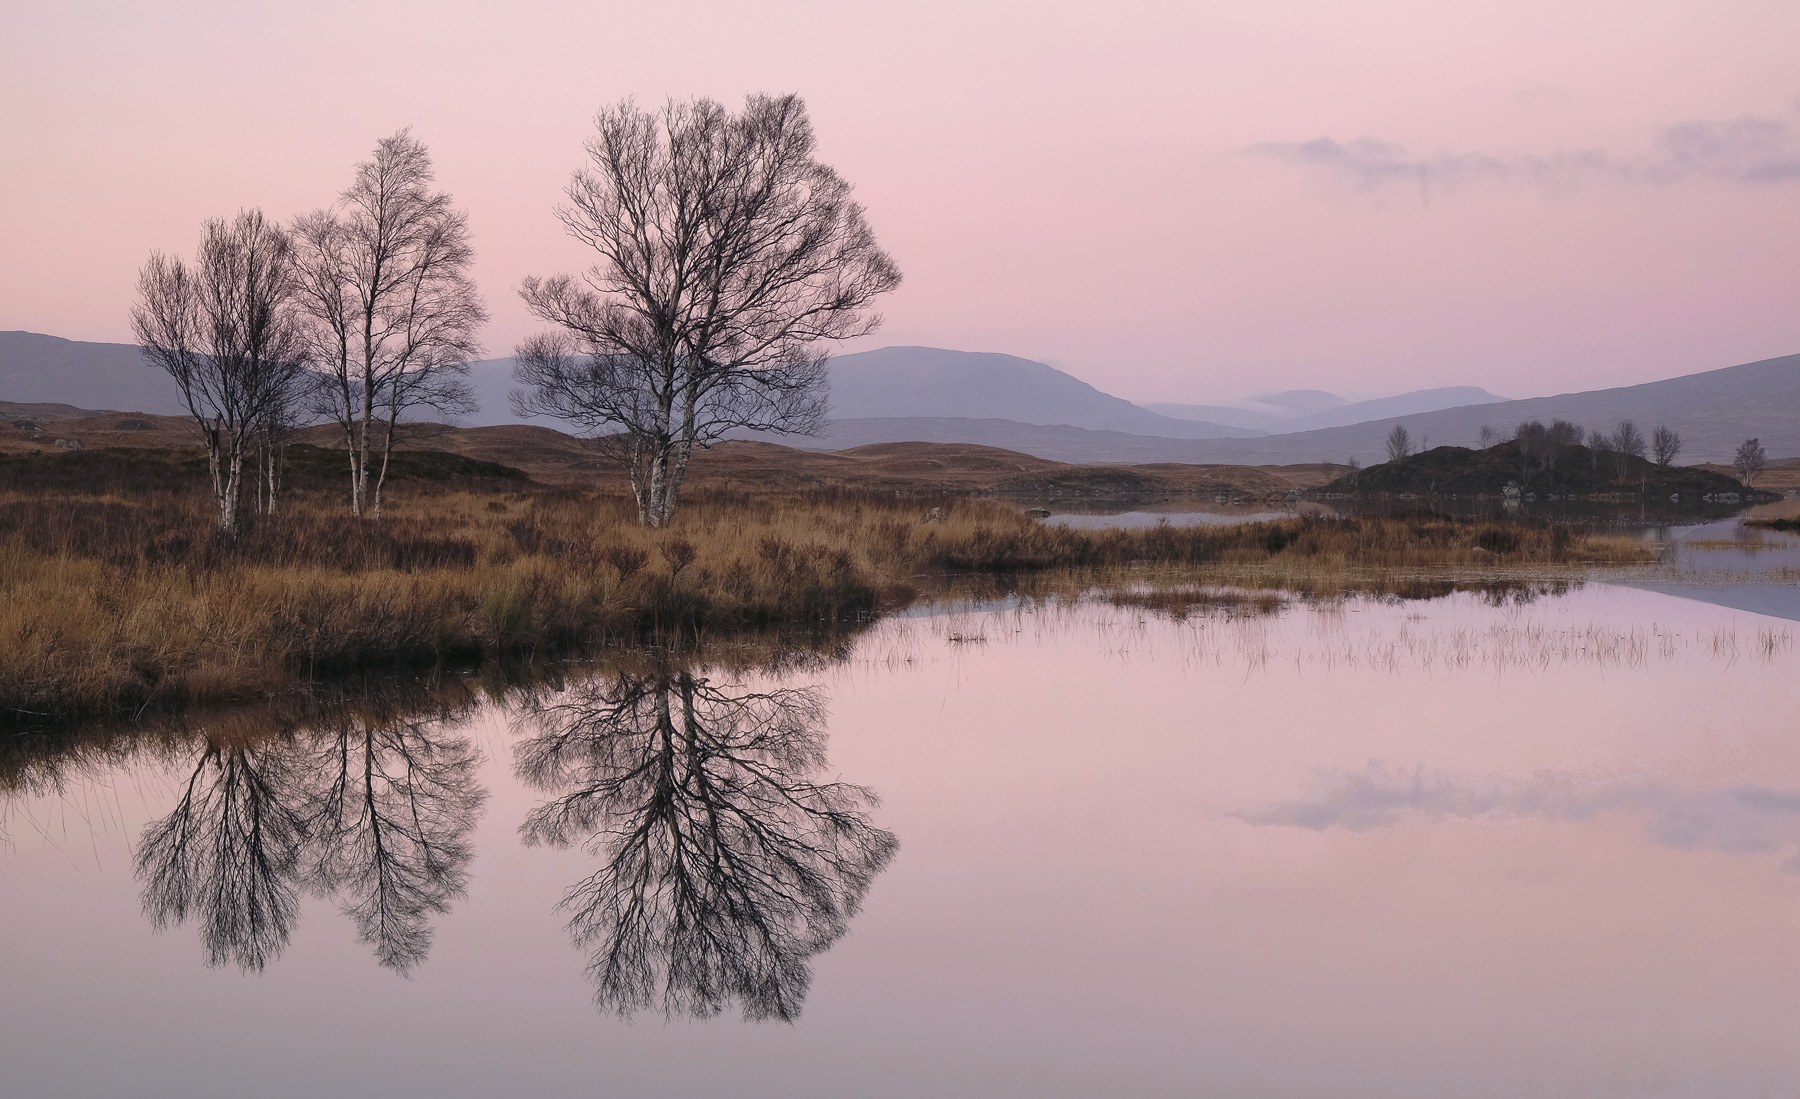 Shortly after sunset the sky above Loch Ba turned pink which duly reflected in the motionless waters of the loch. Two large...